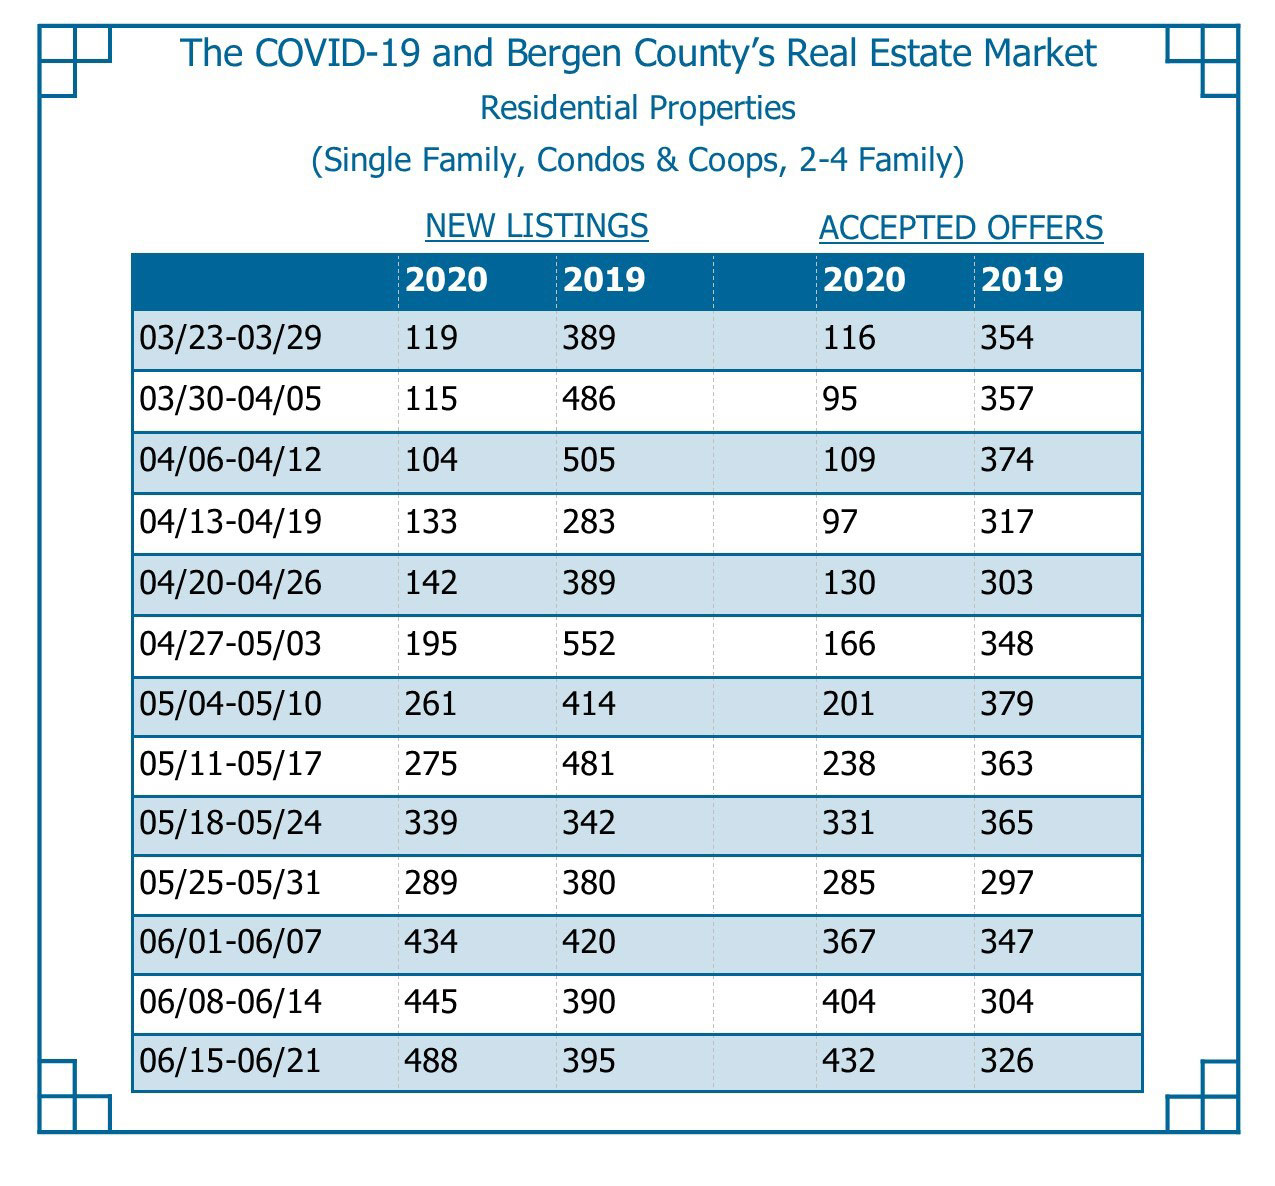 The COVID-19 and Bergen County's Real Estate Market I Residential Properties (Single Family, Condos & Coops, 2-4 Family) First two numbers for each date range are New Listings (2020 compared to 2019), next two numbers for each date range are Accepted Offers (2020 compared to 2019). 03/23-03/29 119 389 116 354 03/30-04/05 115 486 95 357 04/06-04/12 104 505 109 374 04/13-04/19 133 283 97 317 04/20-04/26 142 389 130 303 04/27-05/03 195 552 166 348 05/04-05/10 261 414 201 379 05/11-05/17 275 481 238 363 05/18-05/24 339 342 331 365 05/25-05/31 289 380 285 297 06/01-06/07 434 420 367 347 06/08-06/14 445 390 404 304 06/15-06/21 488 395 432 326